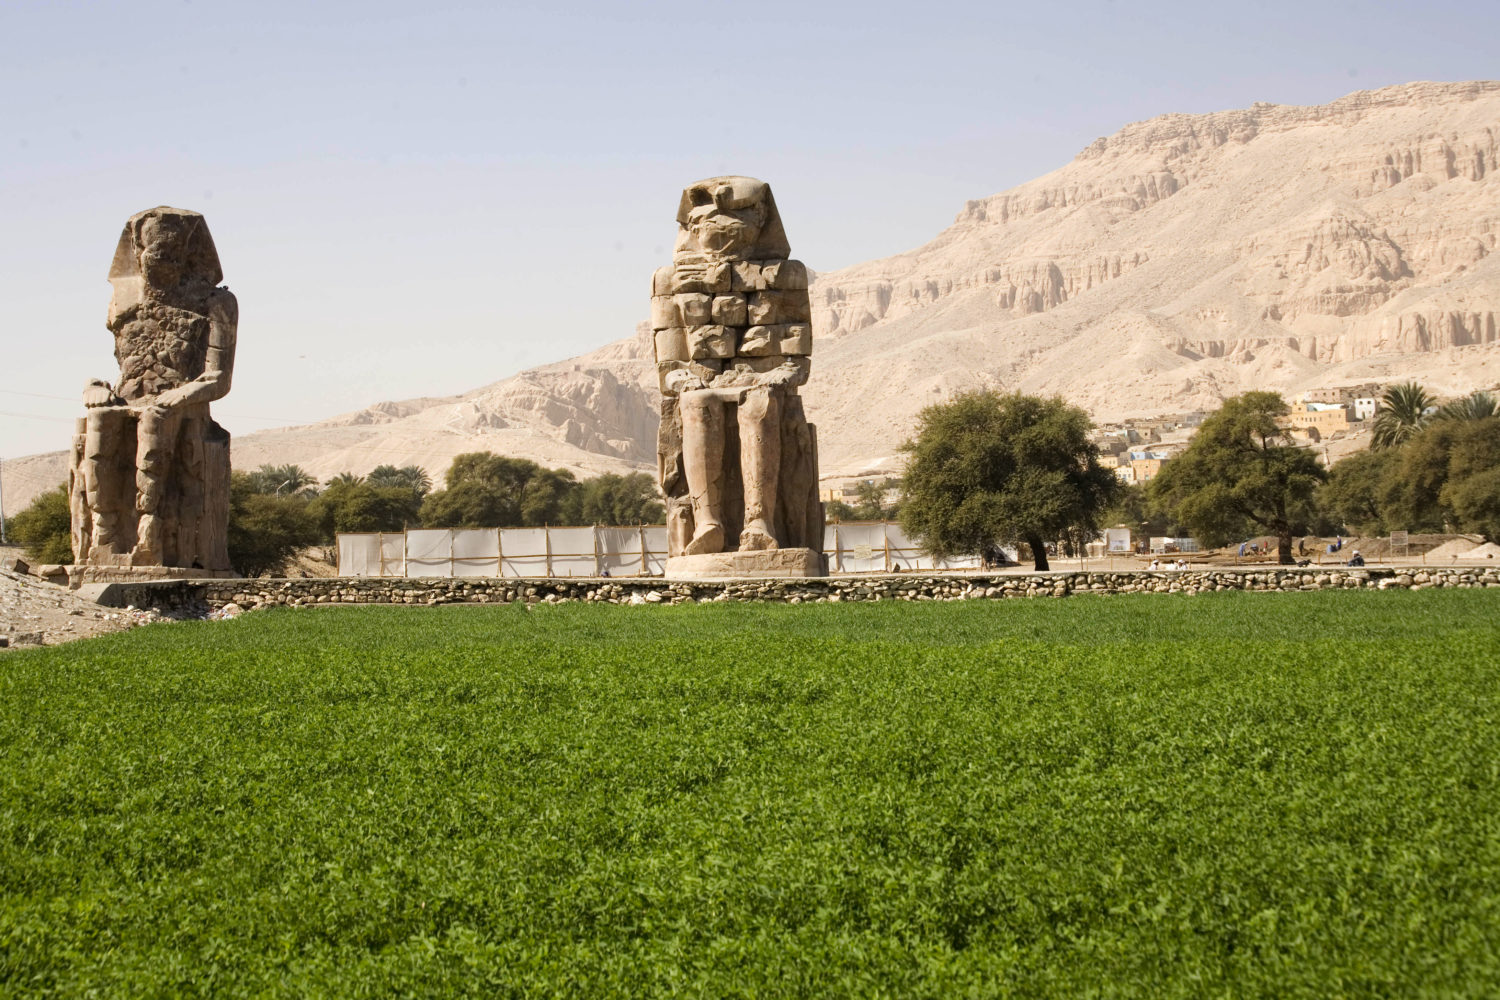 Memnon, Colossi of Memnon, Luxor, Luxor west bank